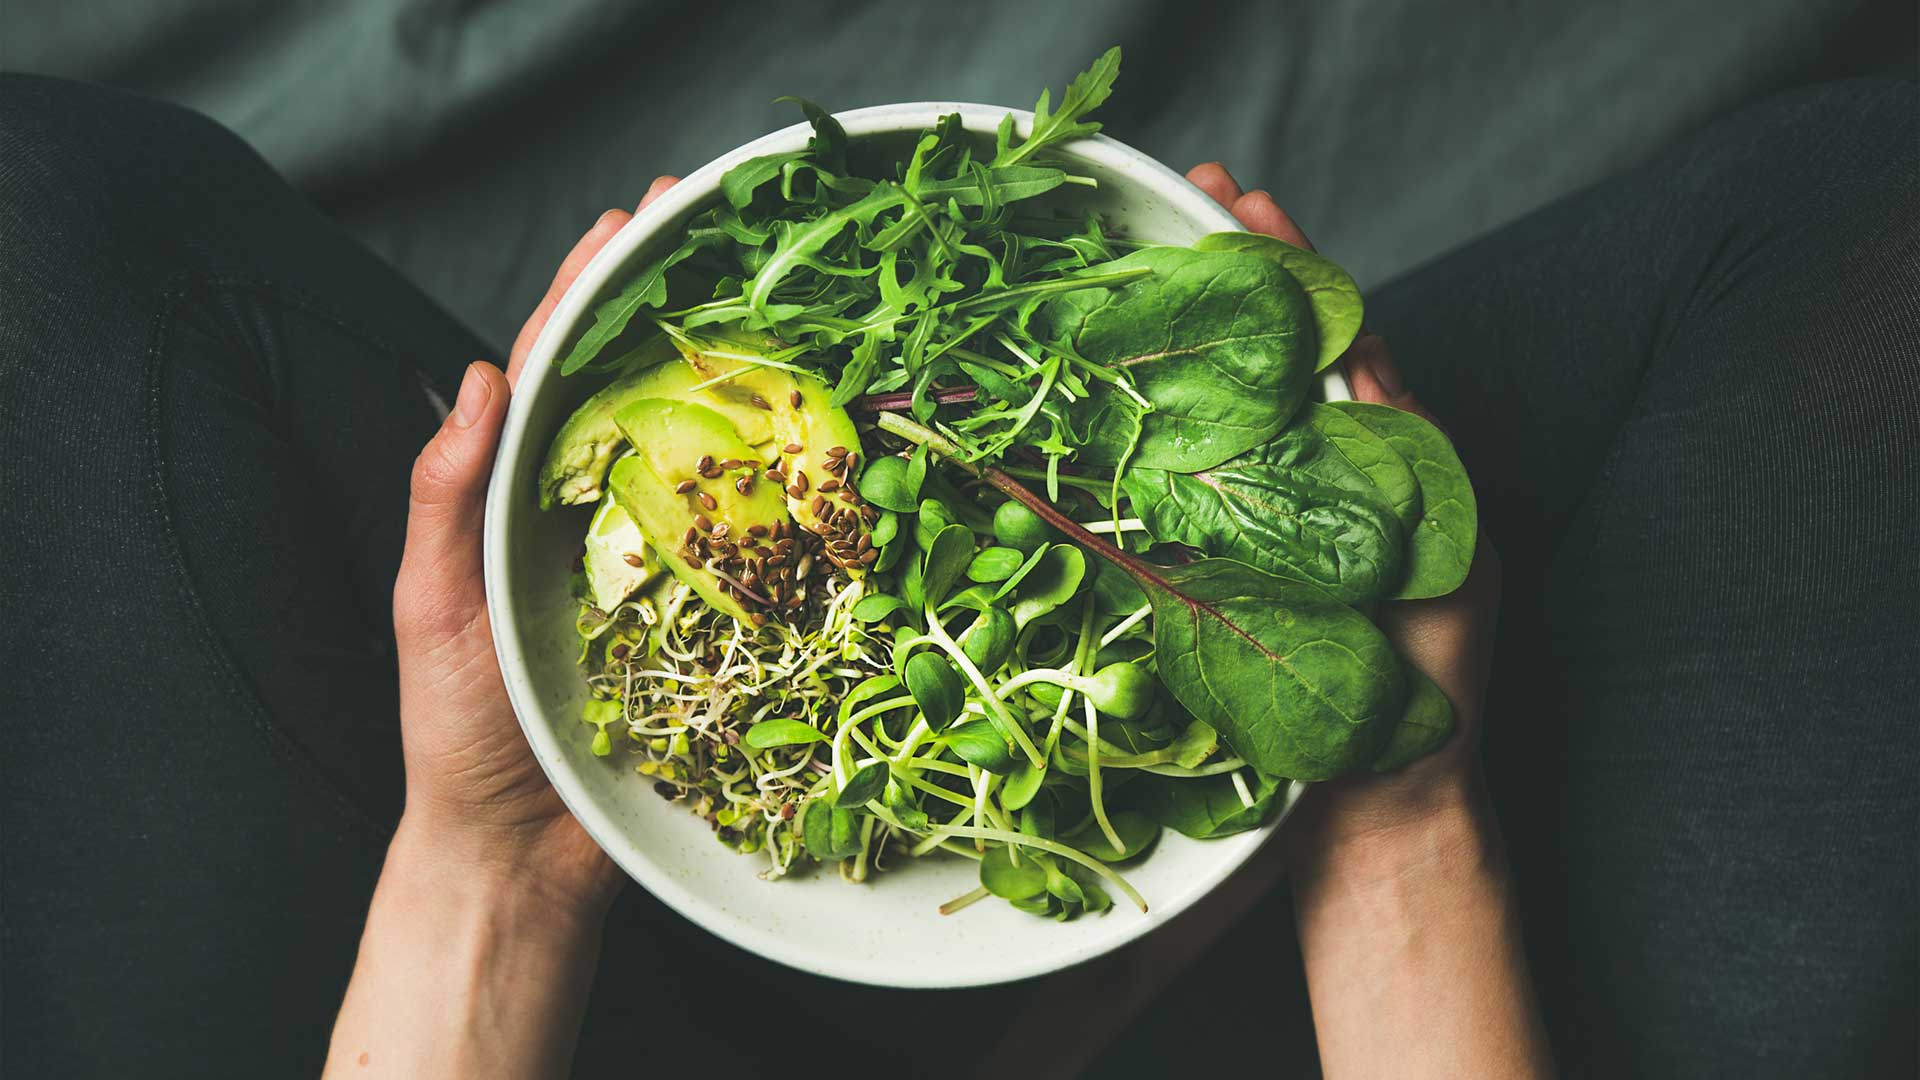 A white bowl of healthy greens and leaves held in two hands over a dark blue background